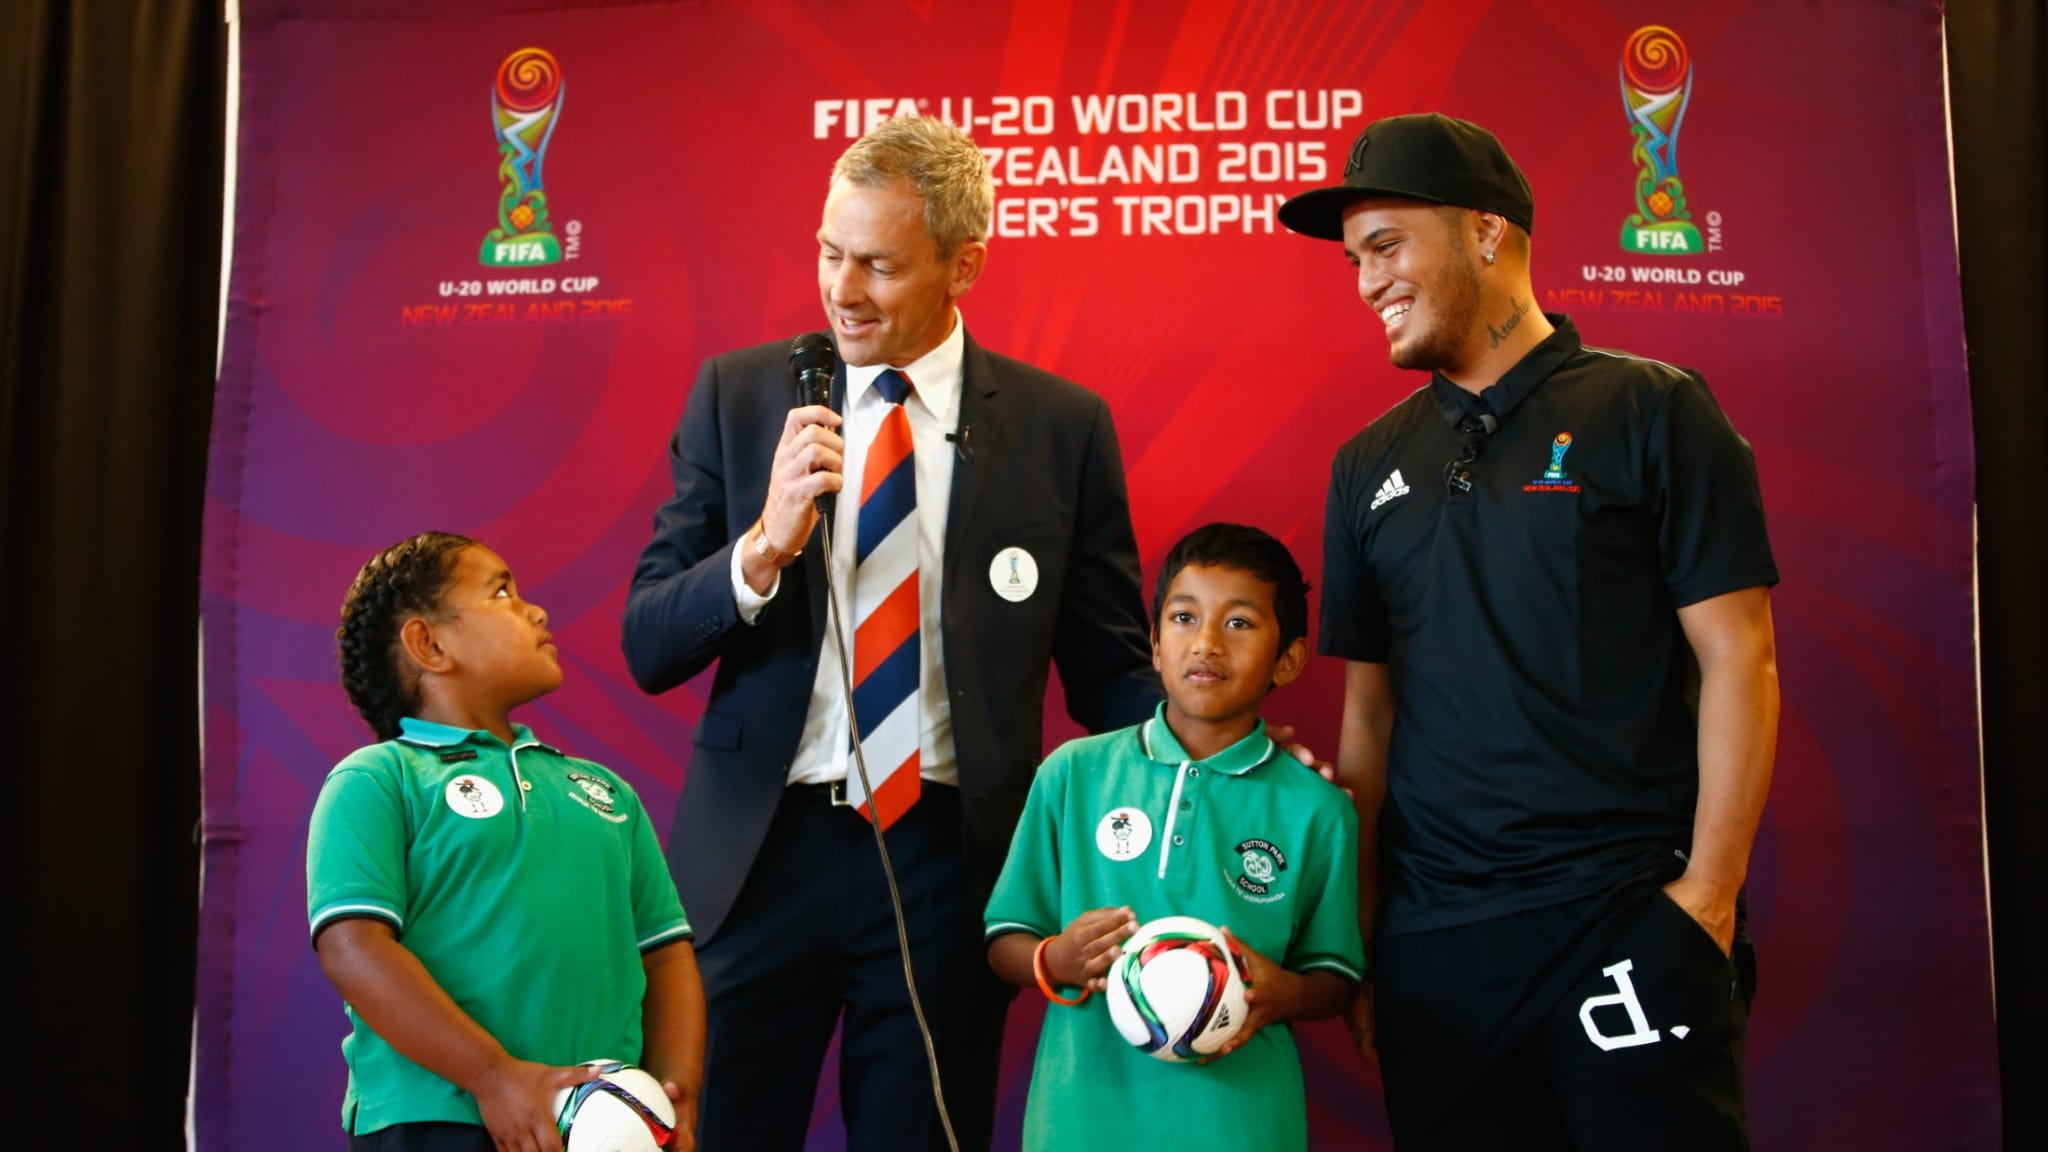 FIFA U20 World Cup CEO Dave Beeche and New Zealand musician and NZ Idol Judge Stan Walker (R) stand with school children Kazitoa Farani and Matilda Lako after Stan Walker was announced as an ambassador for the FIFA U20 World Cup